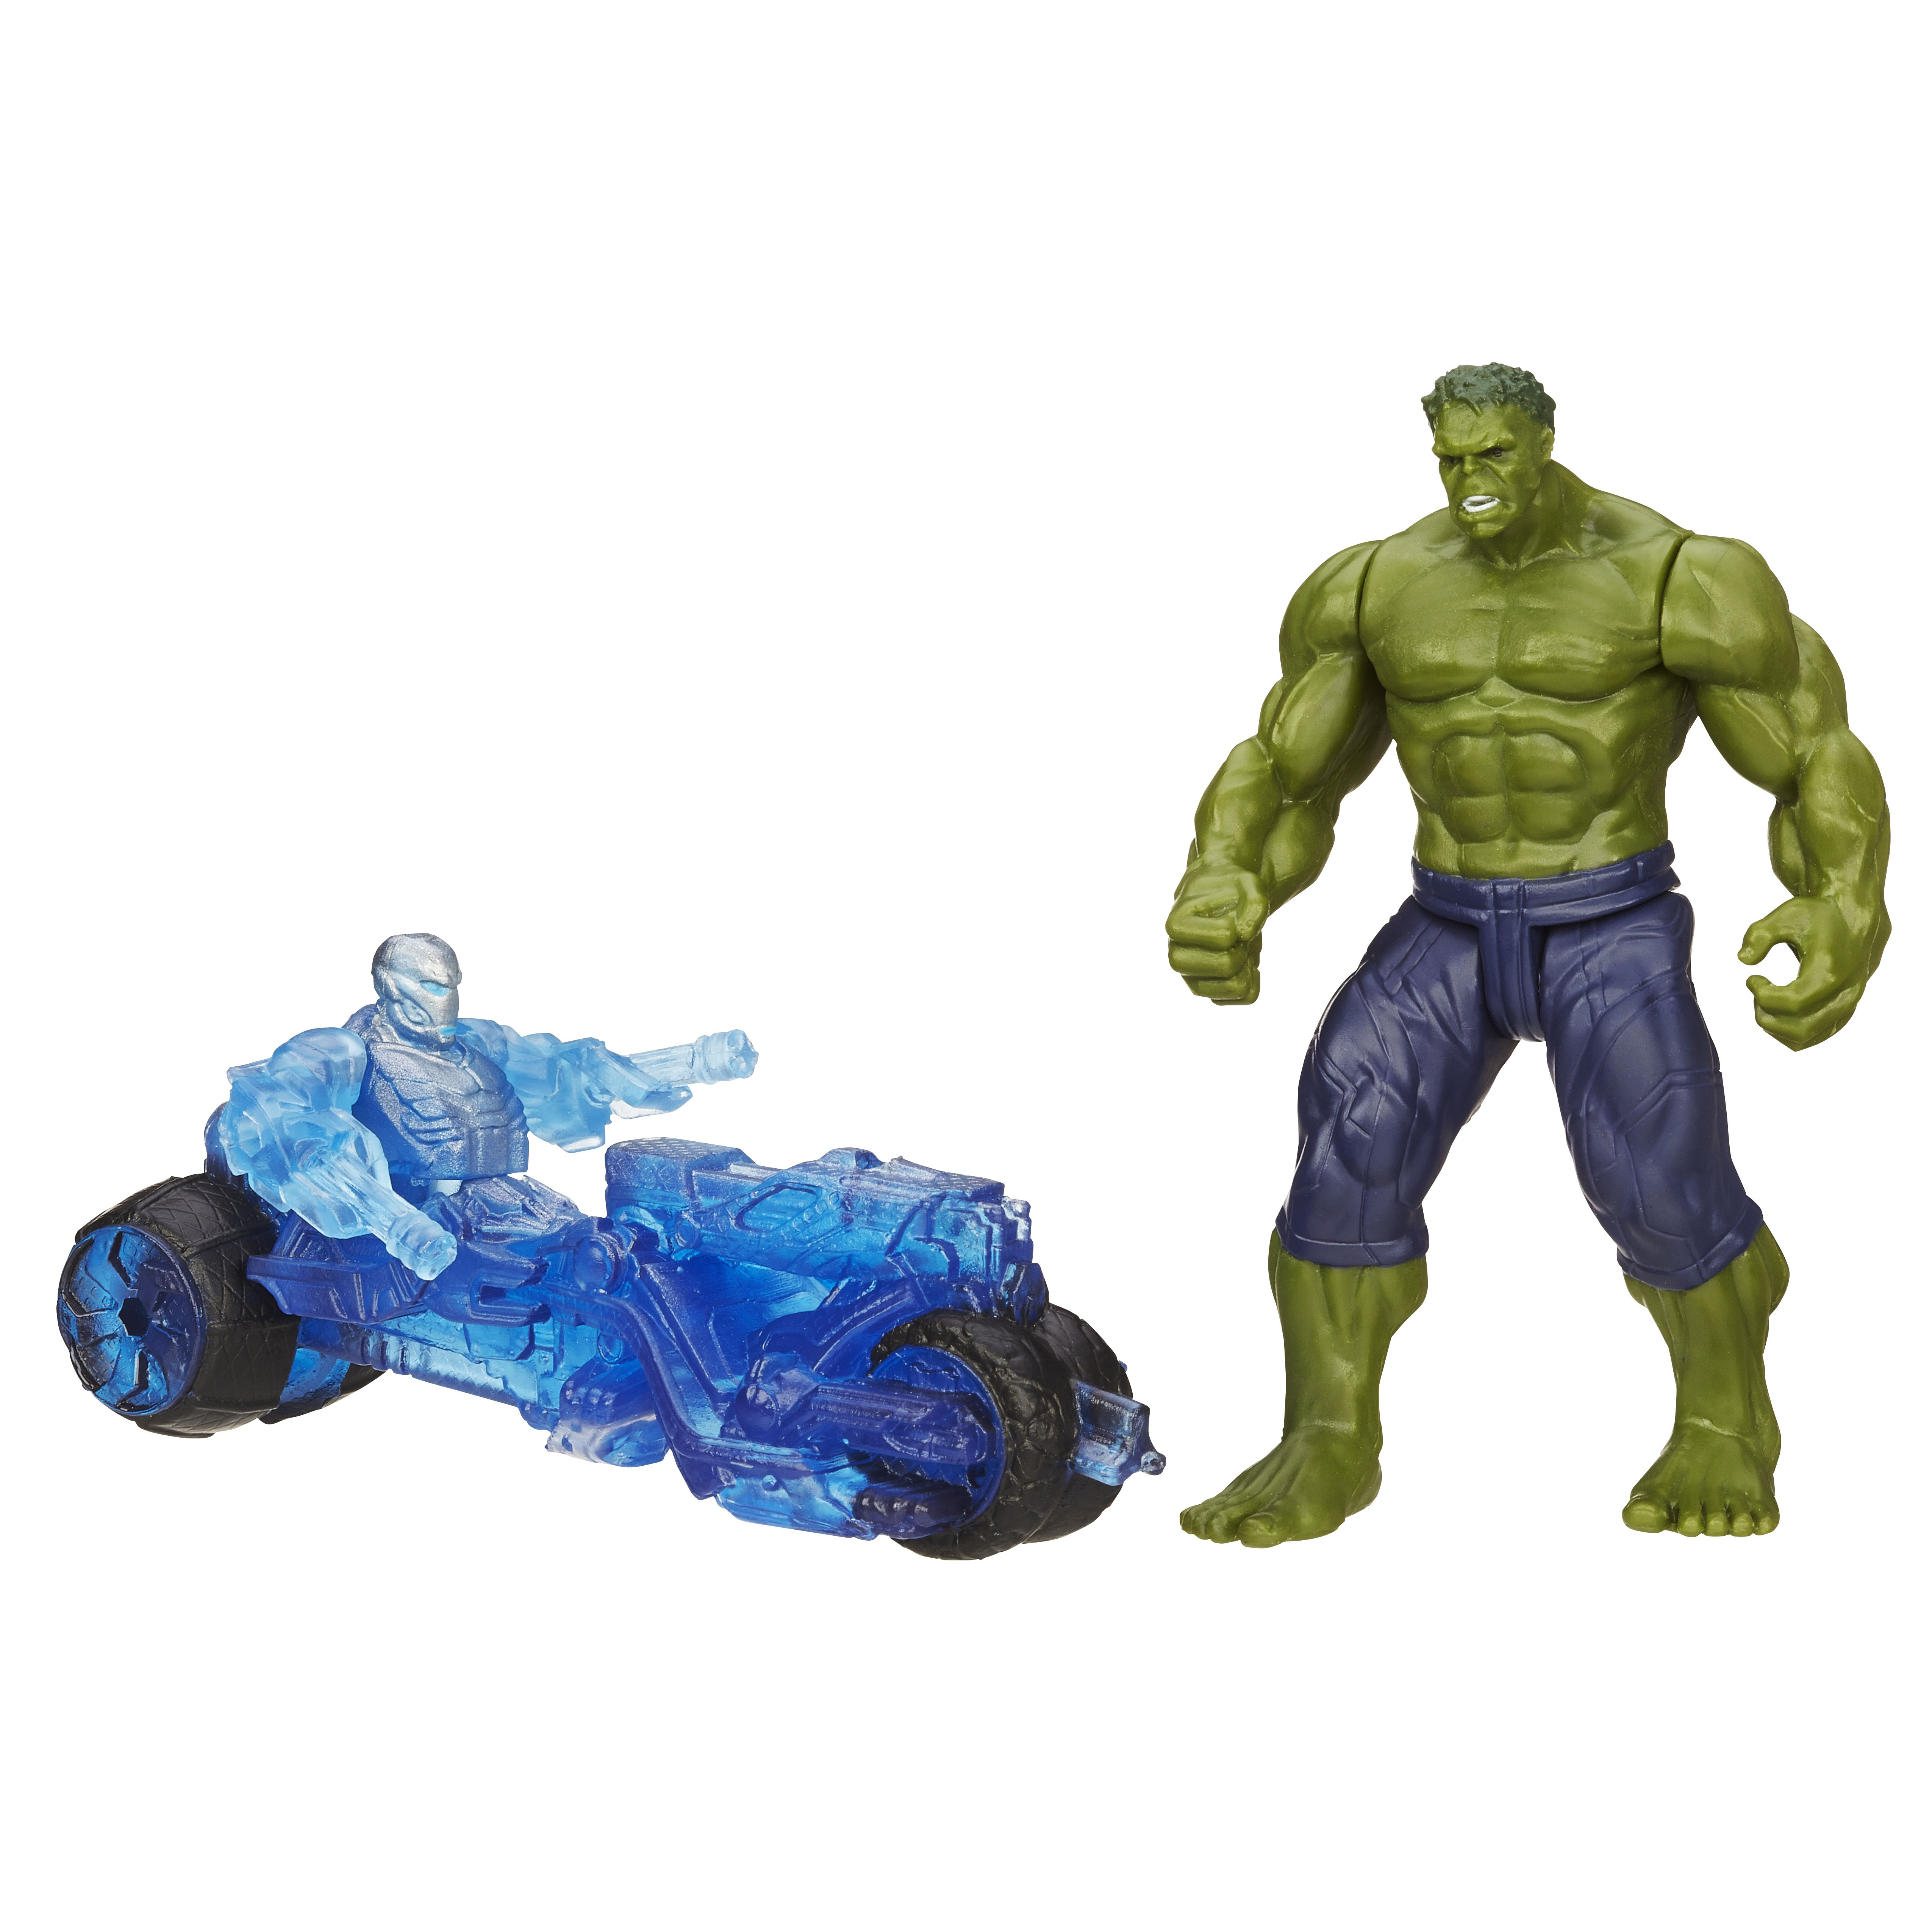 Avengers Age of Ultron Toys - Hasbro Releases First ...